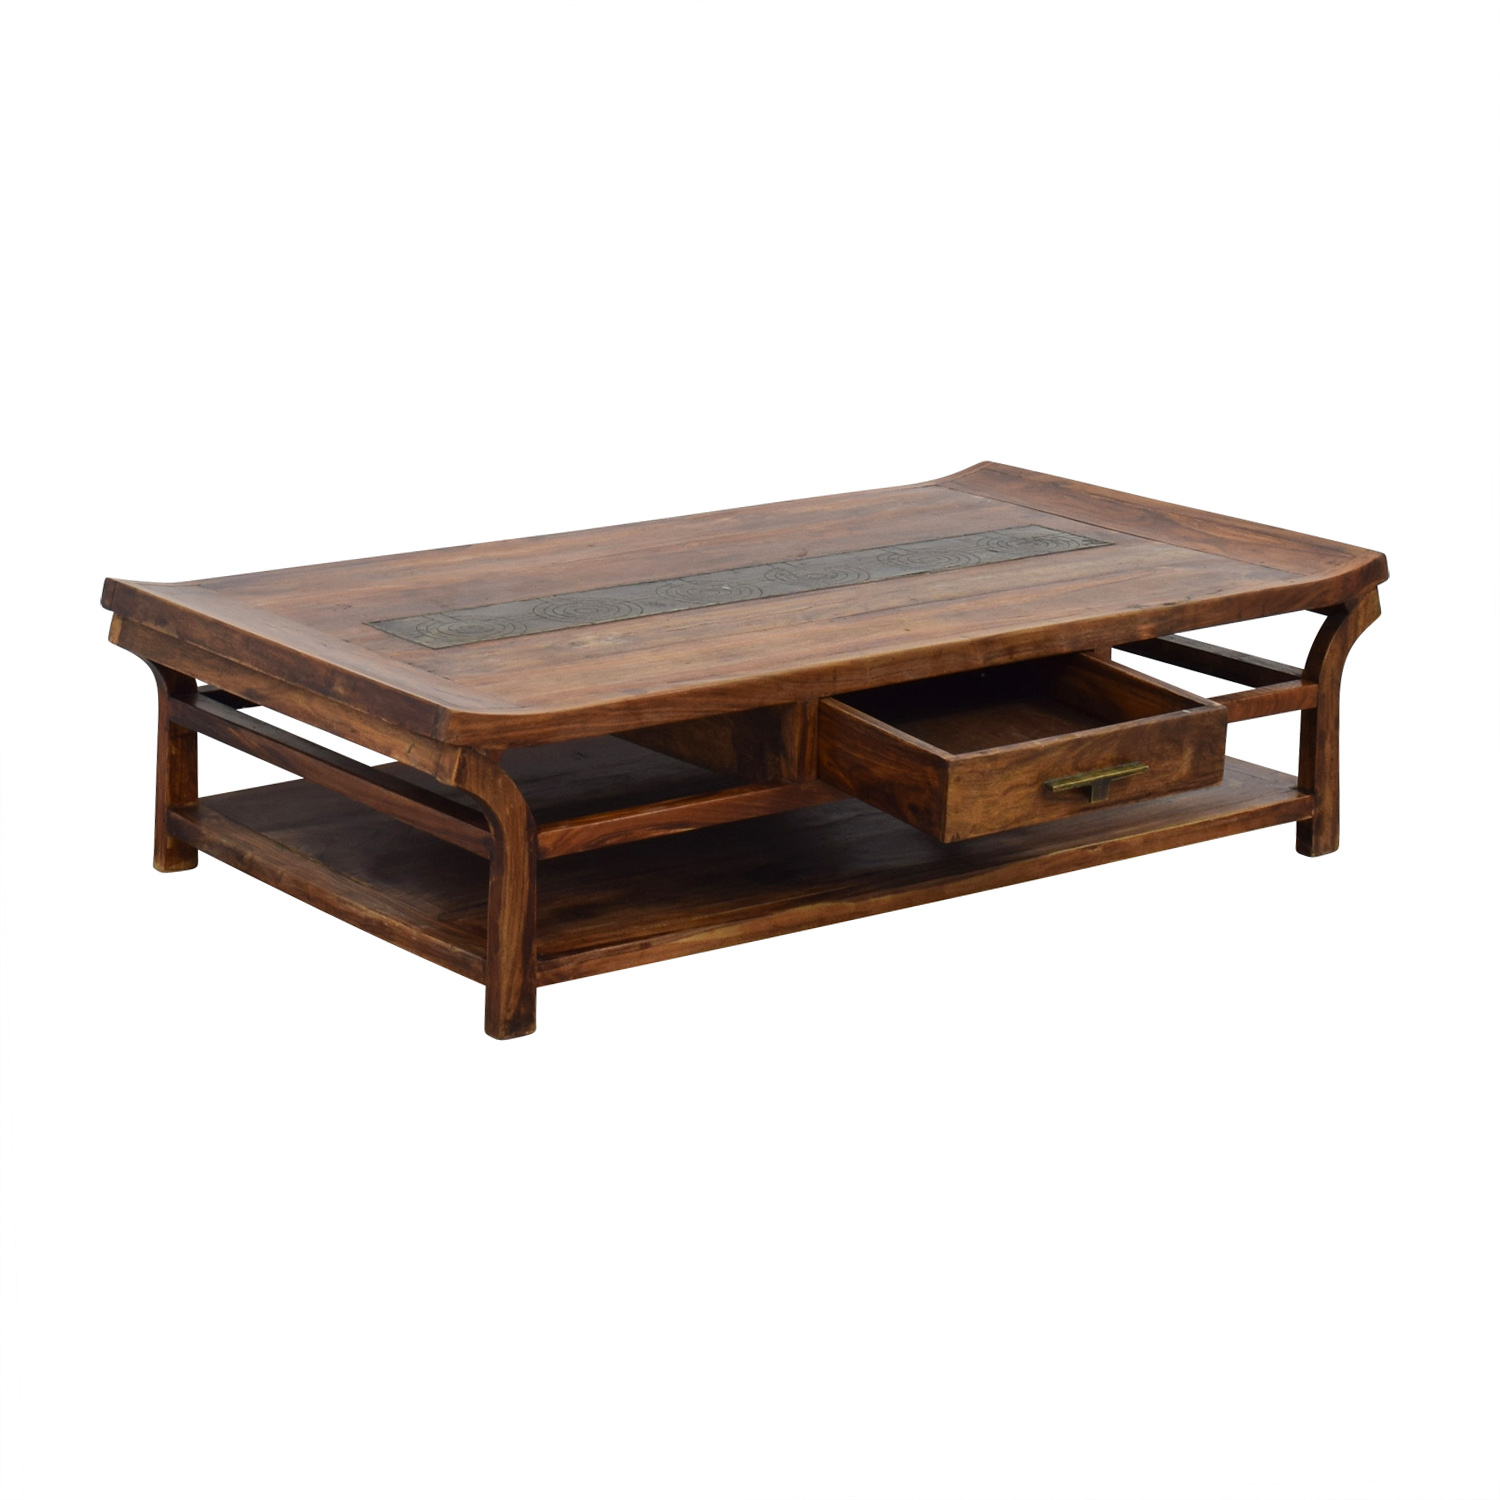 90 Off Natural Wood Coffee Table Tables